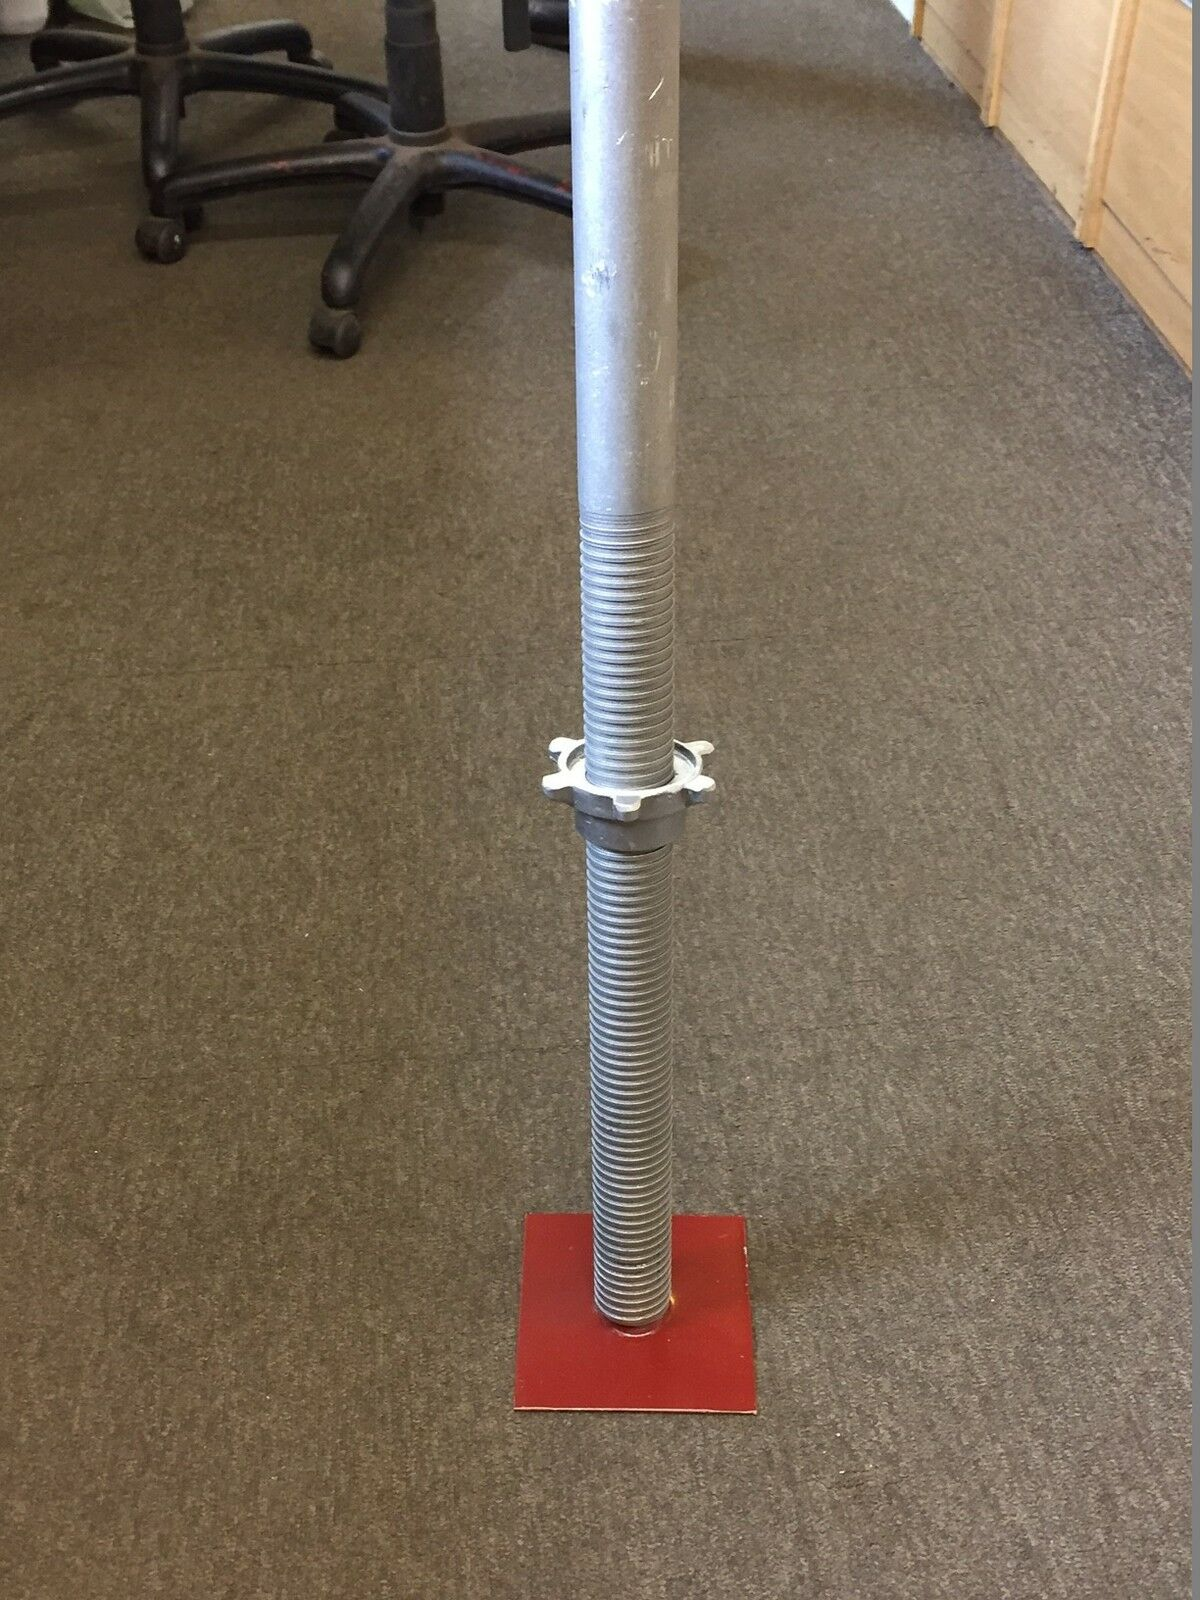 Alloy tower adjustable Leg to fit scaffolding tower  Youngman BoSS